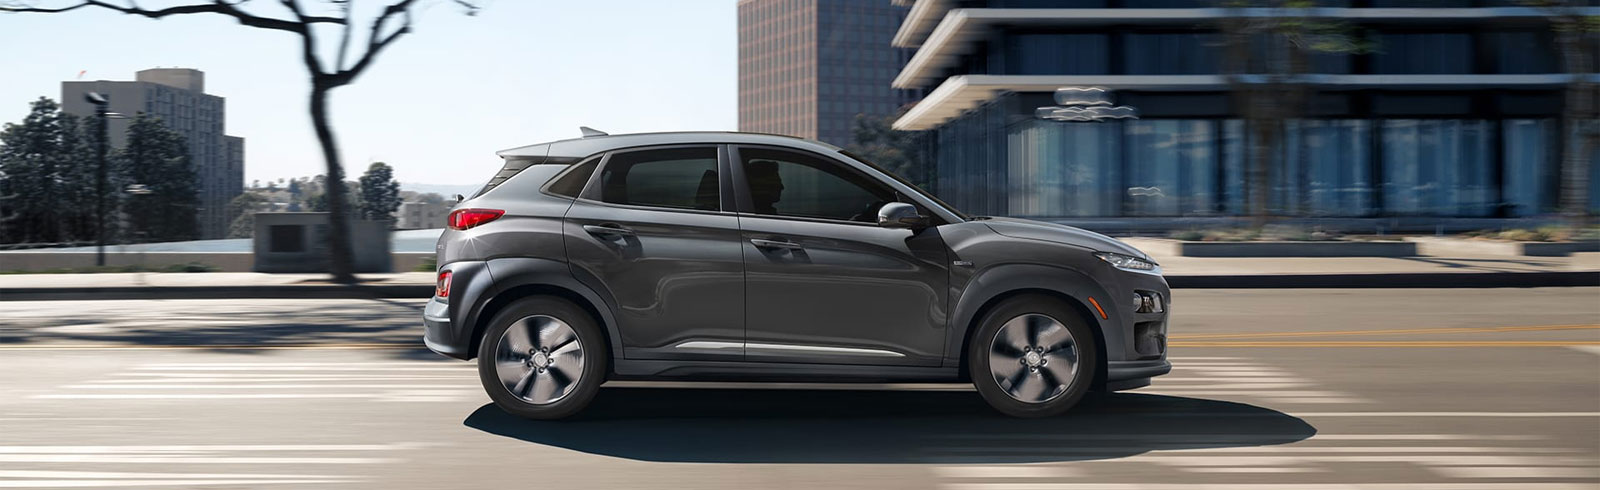 Hyundai Kona EV gets an 11 kW charger and other updates